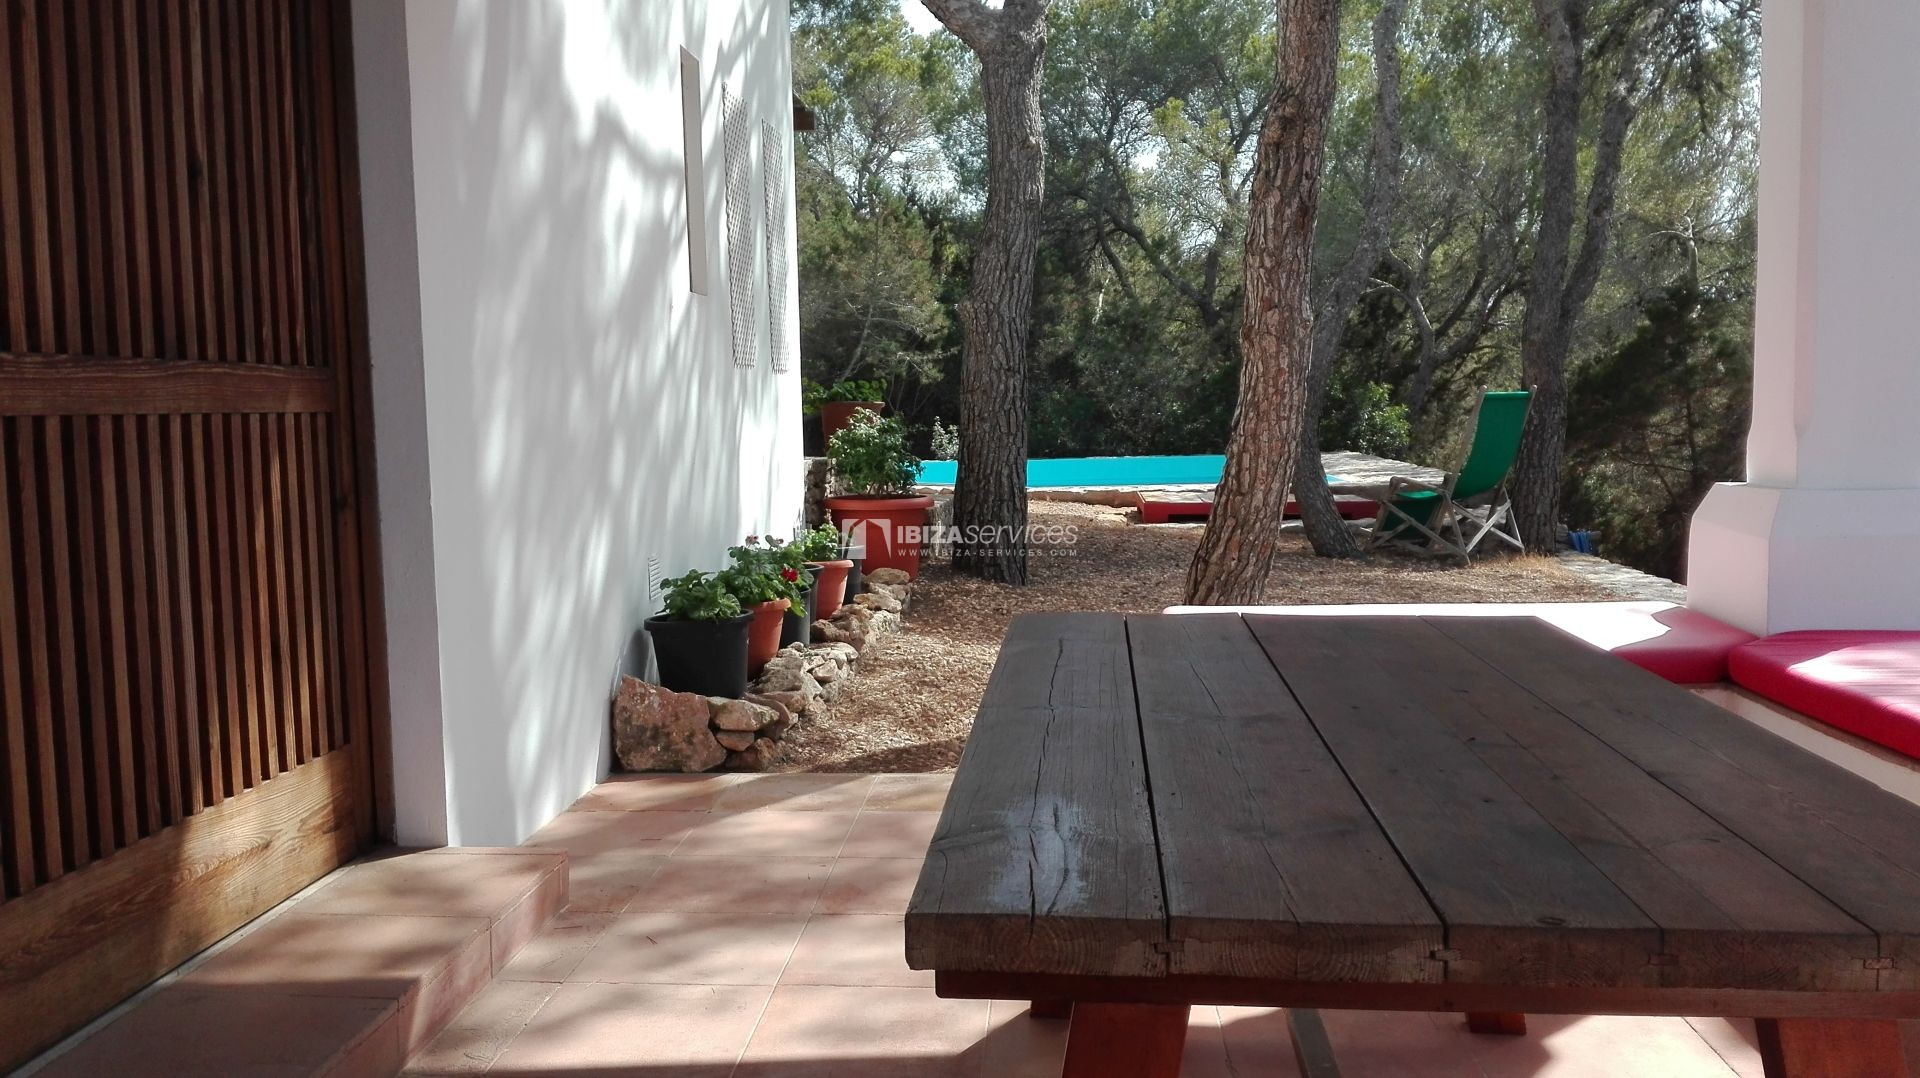 Rustic villa for sale in Formentera perspectiva 33